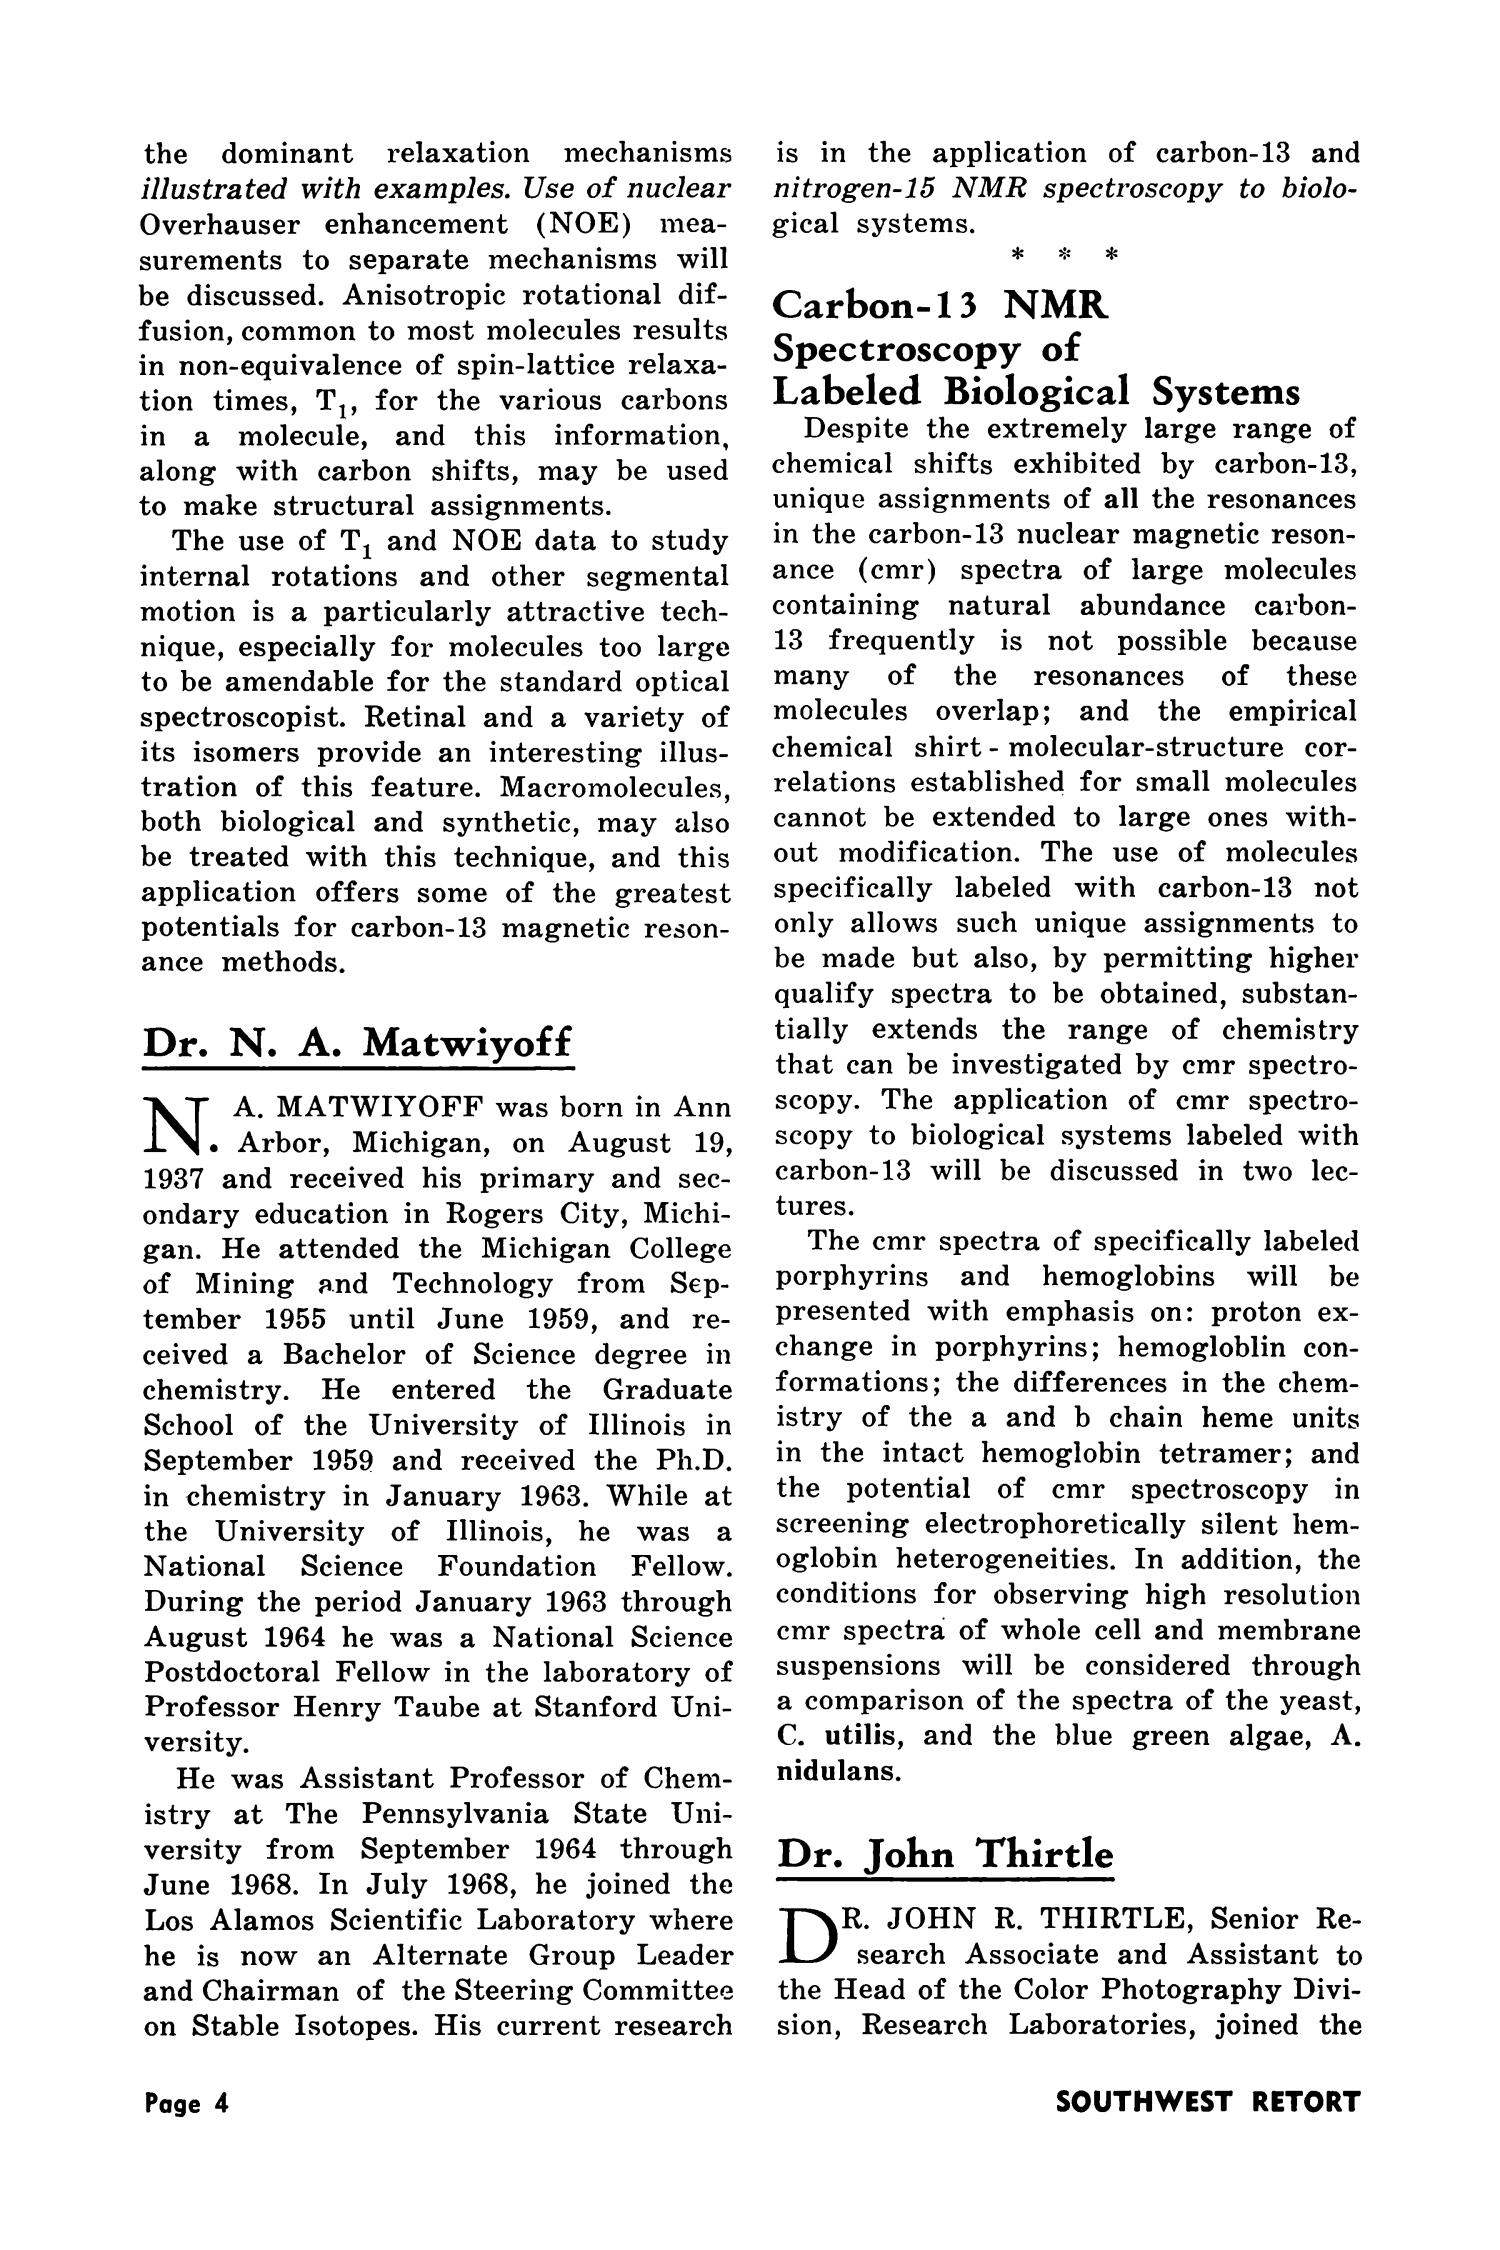 Southwest Retort, Volume 27, Number 5, January 1975                                                                                                      4